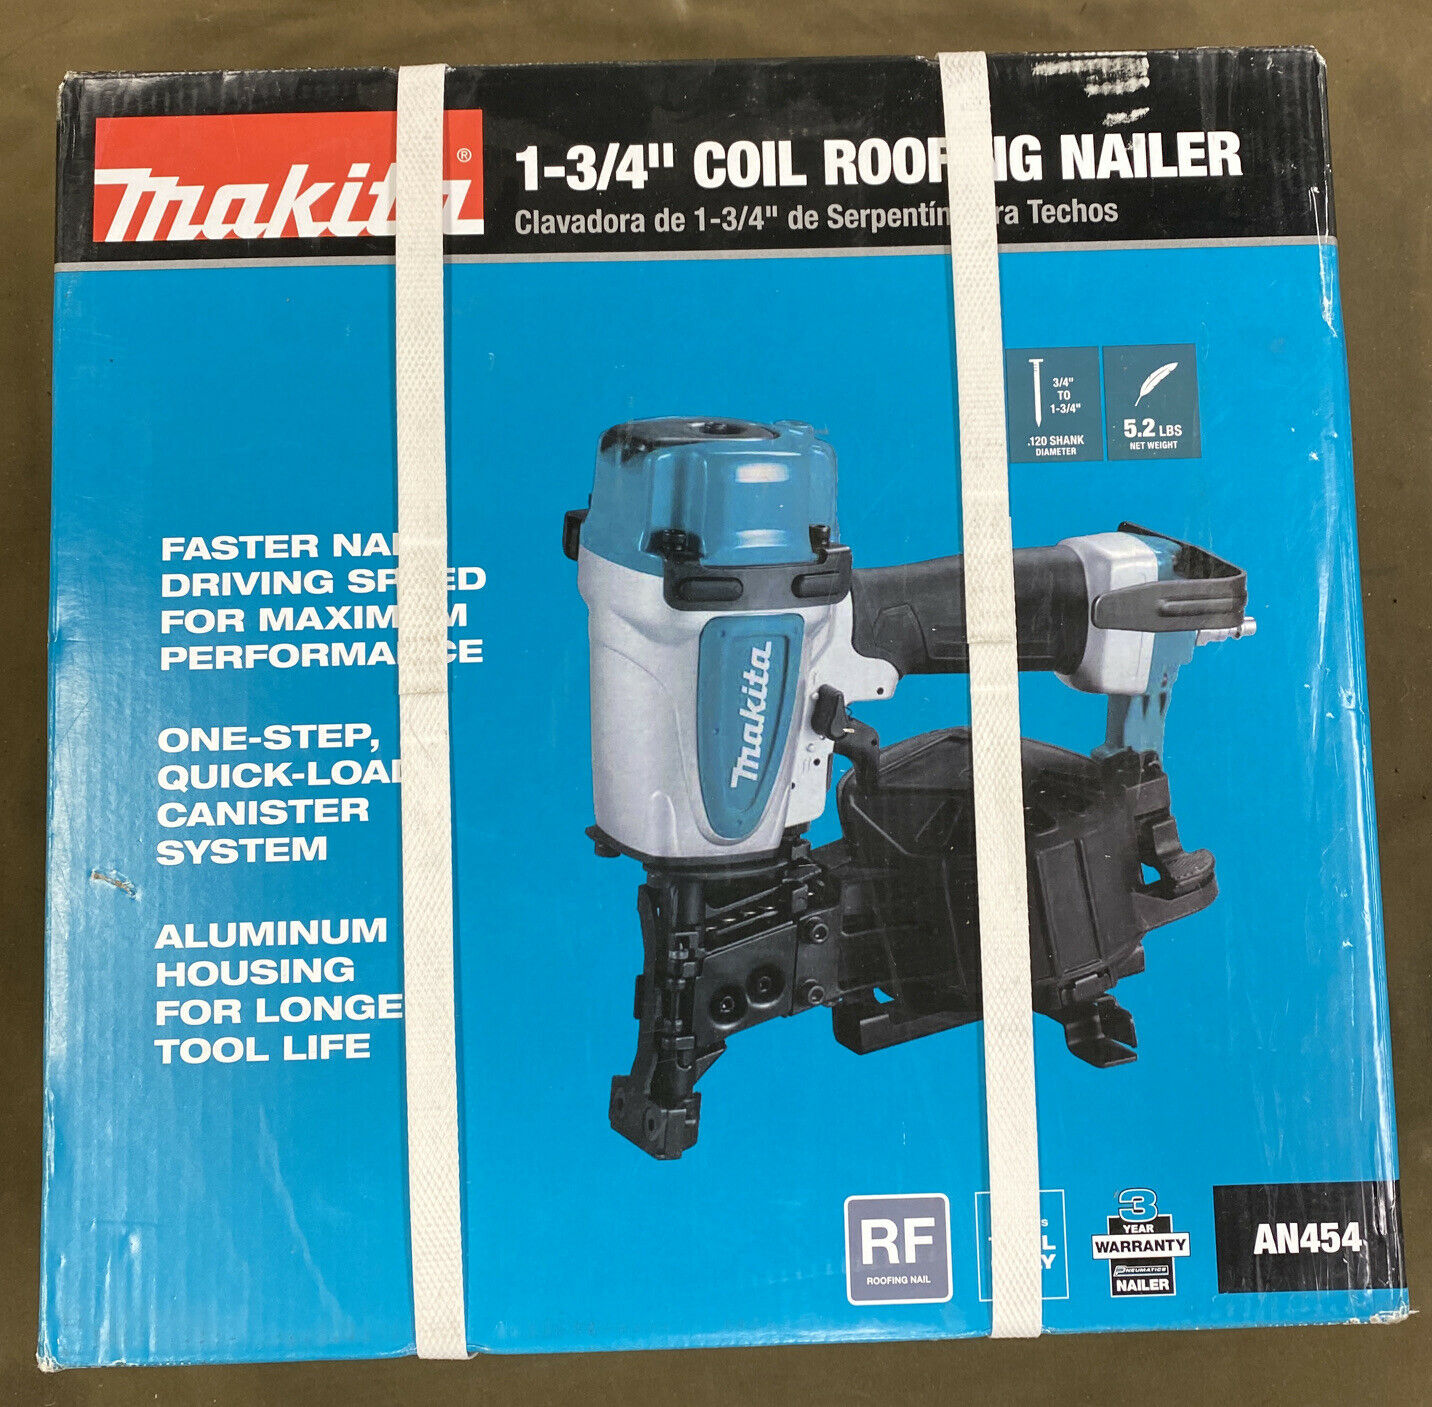 AN454, AN454-R superdealer5 Makita (AN454) - 1-3/4 inch Roofing Coil Nailer....NEW!!!....FREE S&H!!